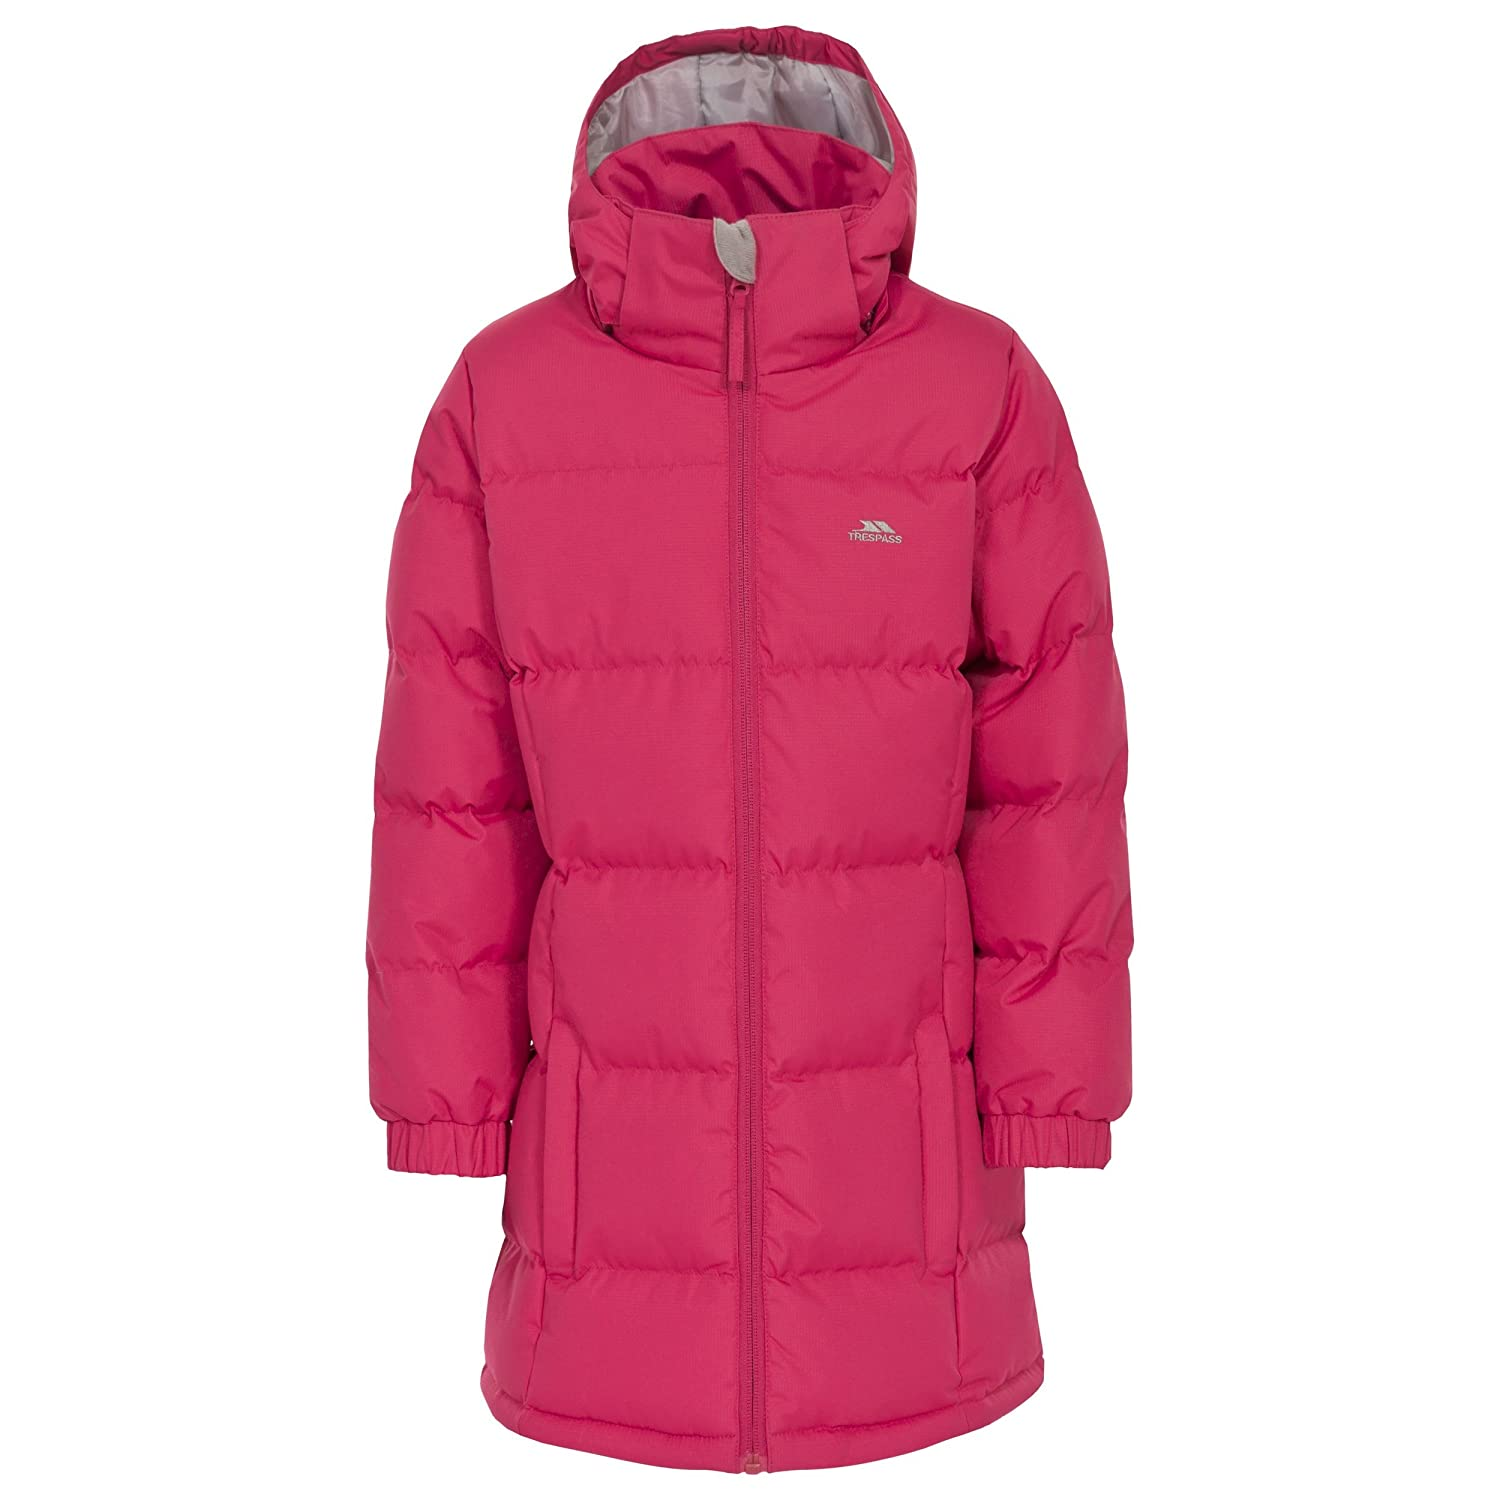 Girls Trespass Padded Jacket with Long Sleeves and A Hood